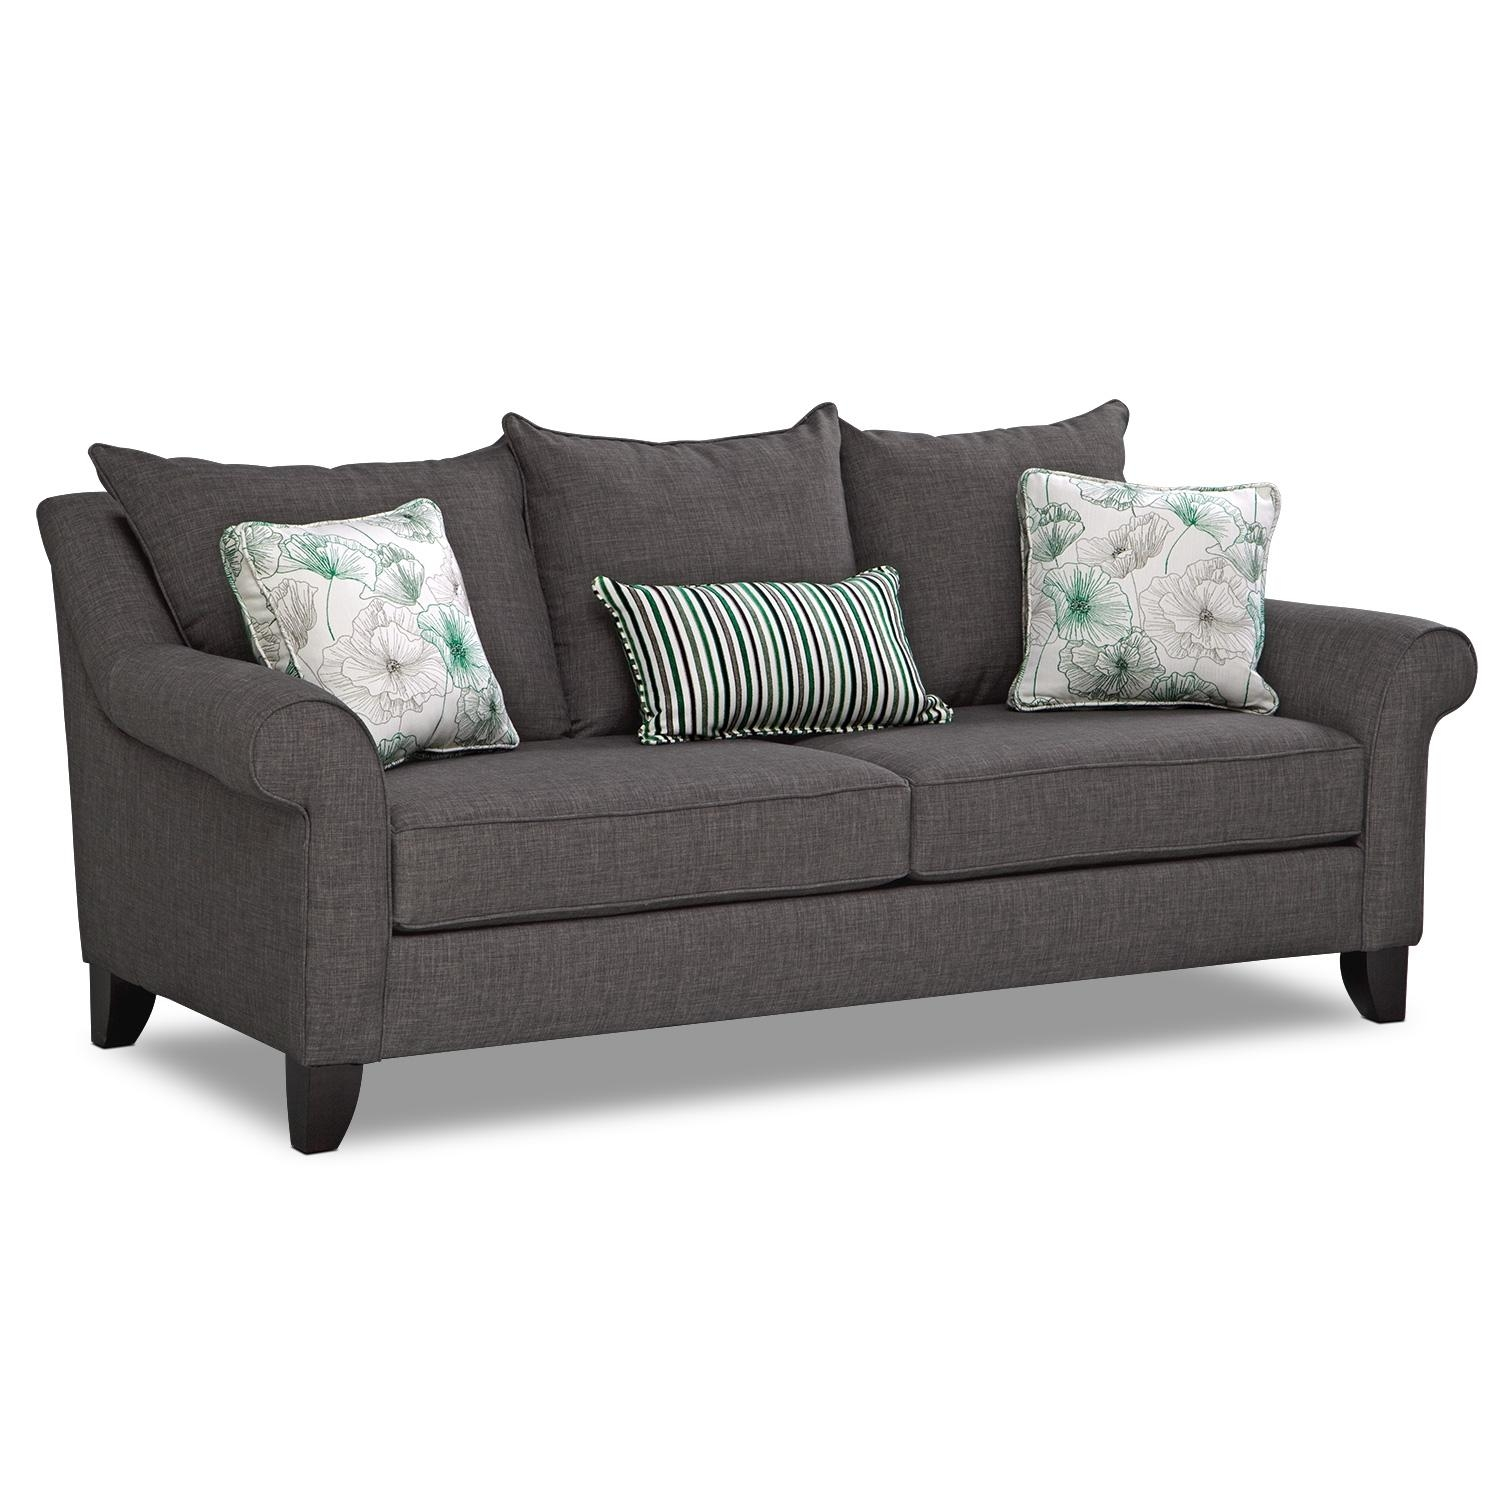 crate and barrel sofa sleeper review stanley india hyderabad 20 collection of davis sofas | ideas